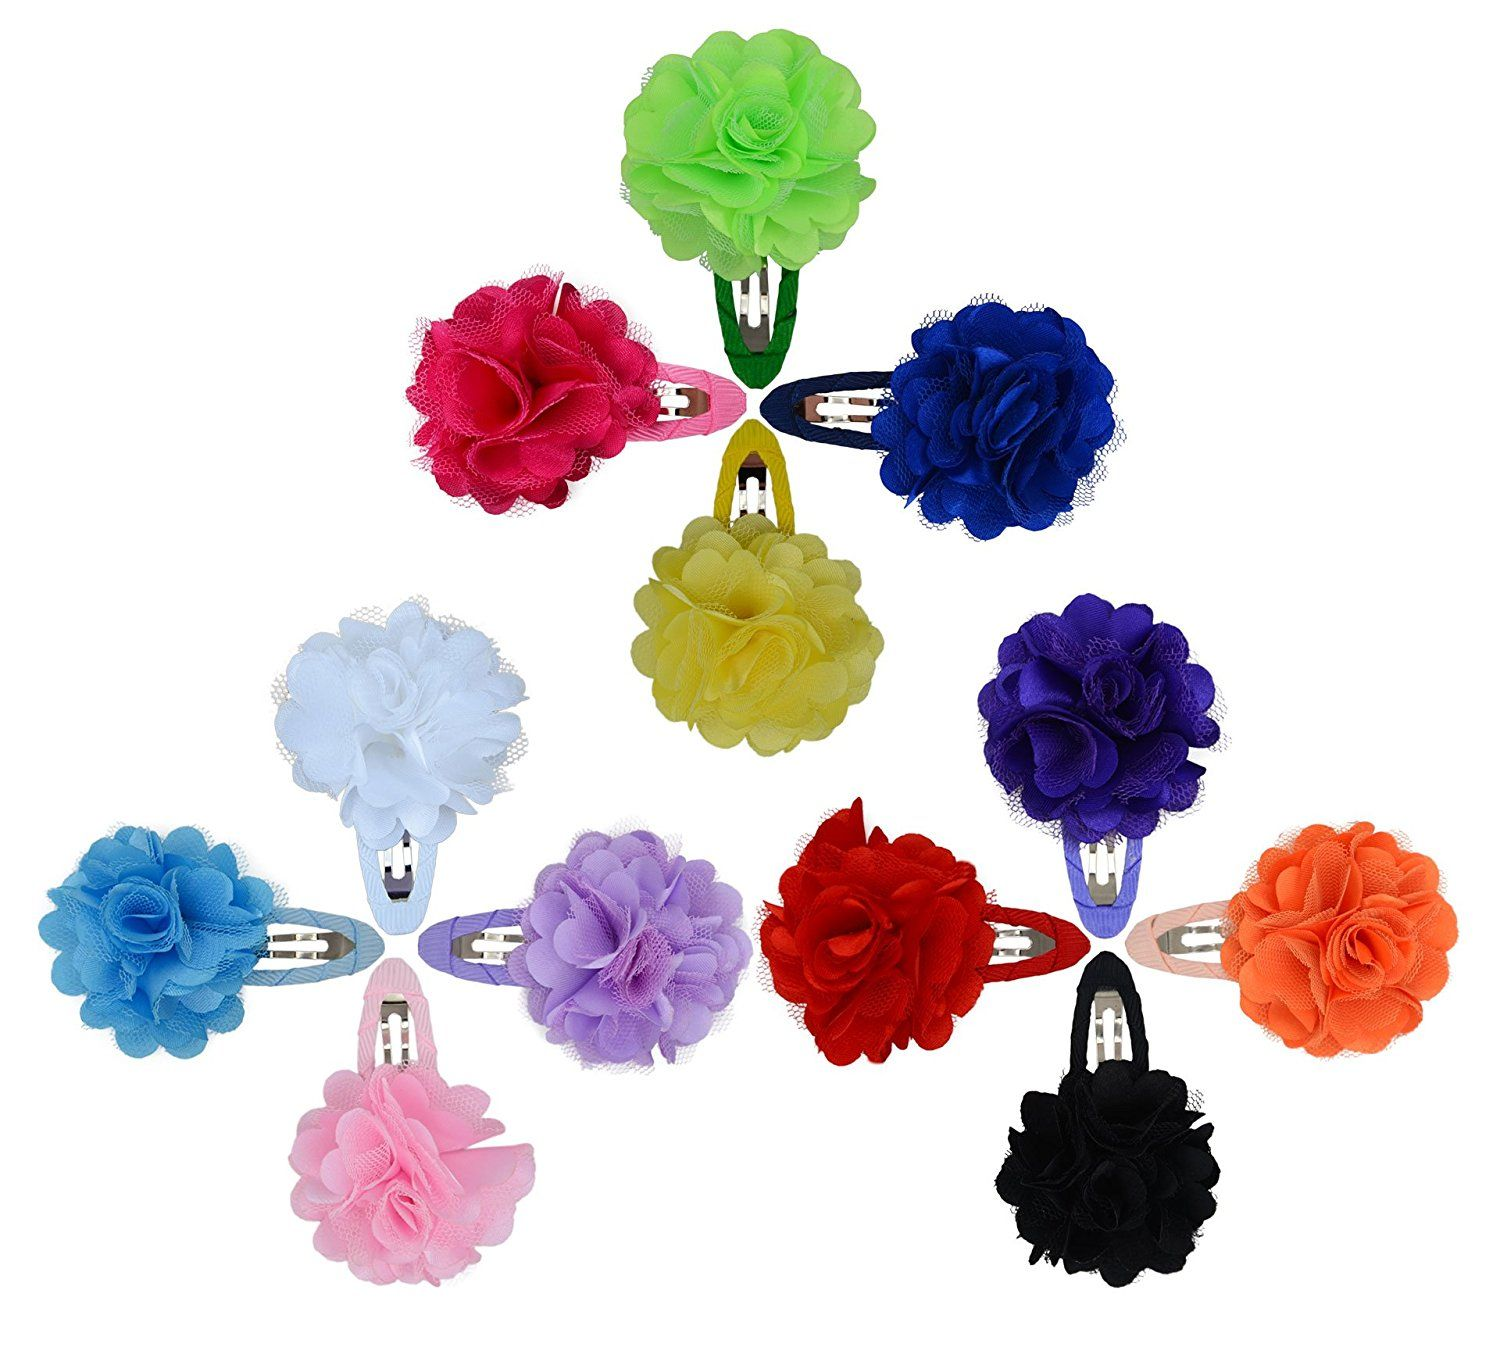 12 Pcs Fashion Baby Girls Satin Lace Flower Headbands Hairband Side Bangs Clips Hair Accessories ** To view further for this item, visit the image link.